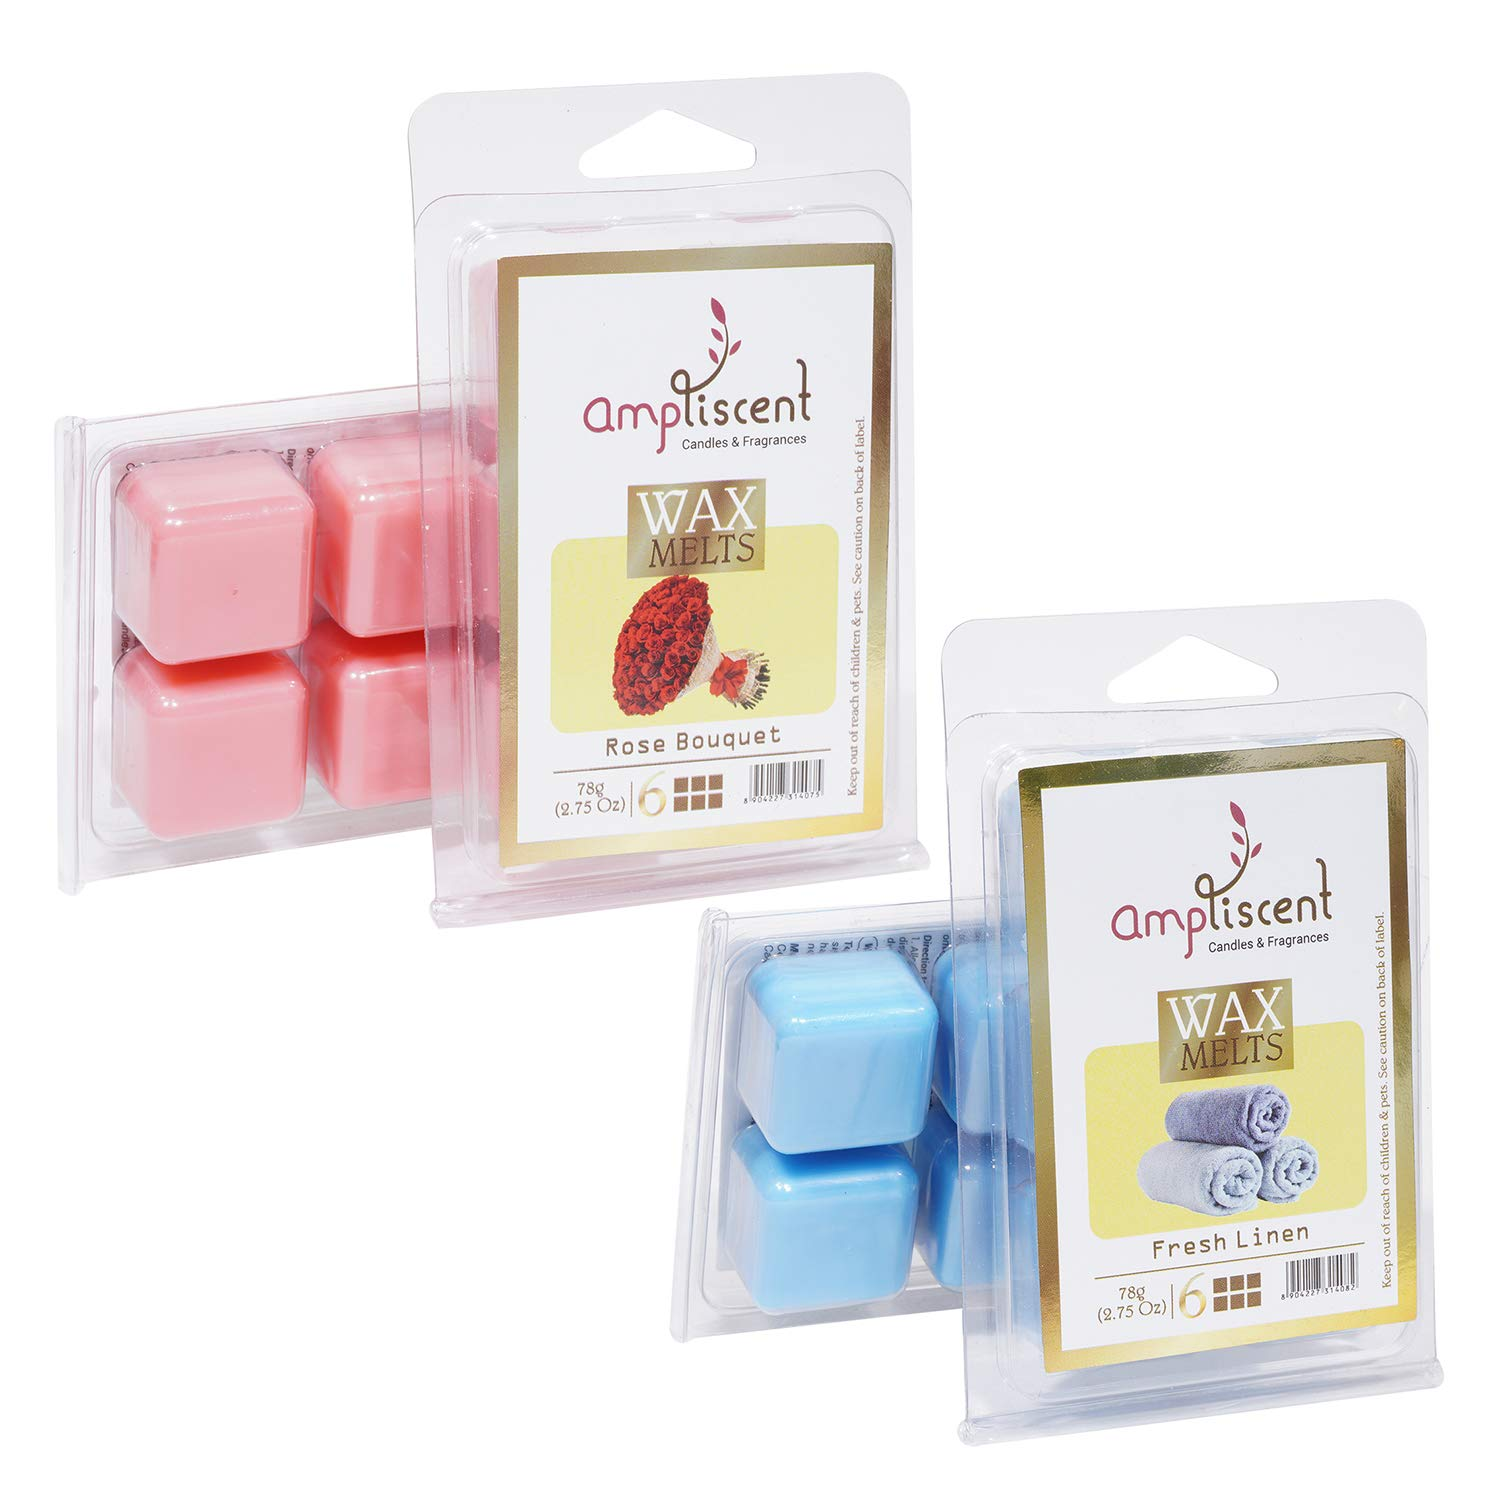 Ampliscent Scented Wax Melts -Set of 2 (2.5 oz) Assorted Wax Warmer Cubes/Tarts - Fresh Linen and Rose Bouquet